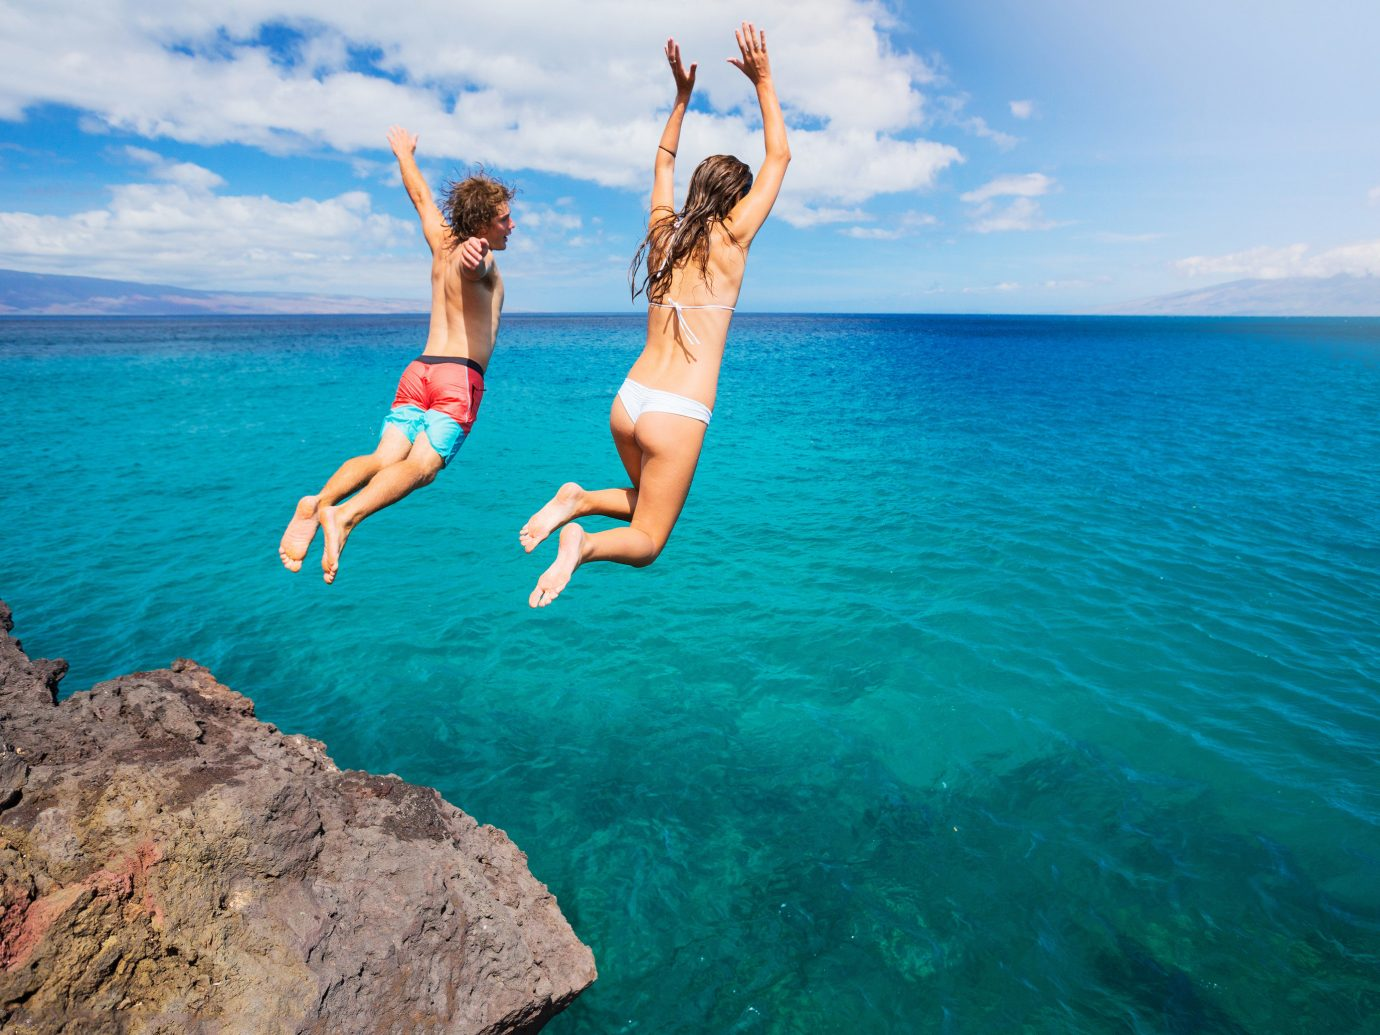 Offbeat water sky outdoor Sea Ocean vacation water sport Beach swimming Coast caribbean Nature cape bay jumping beautiful day